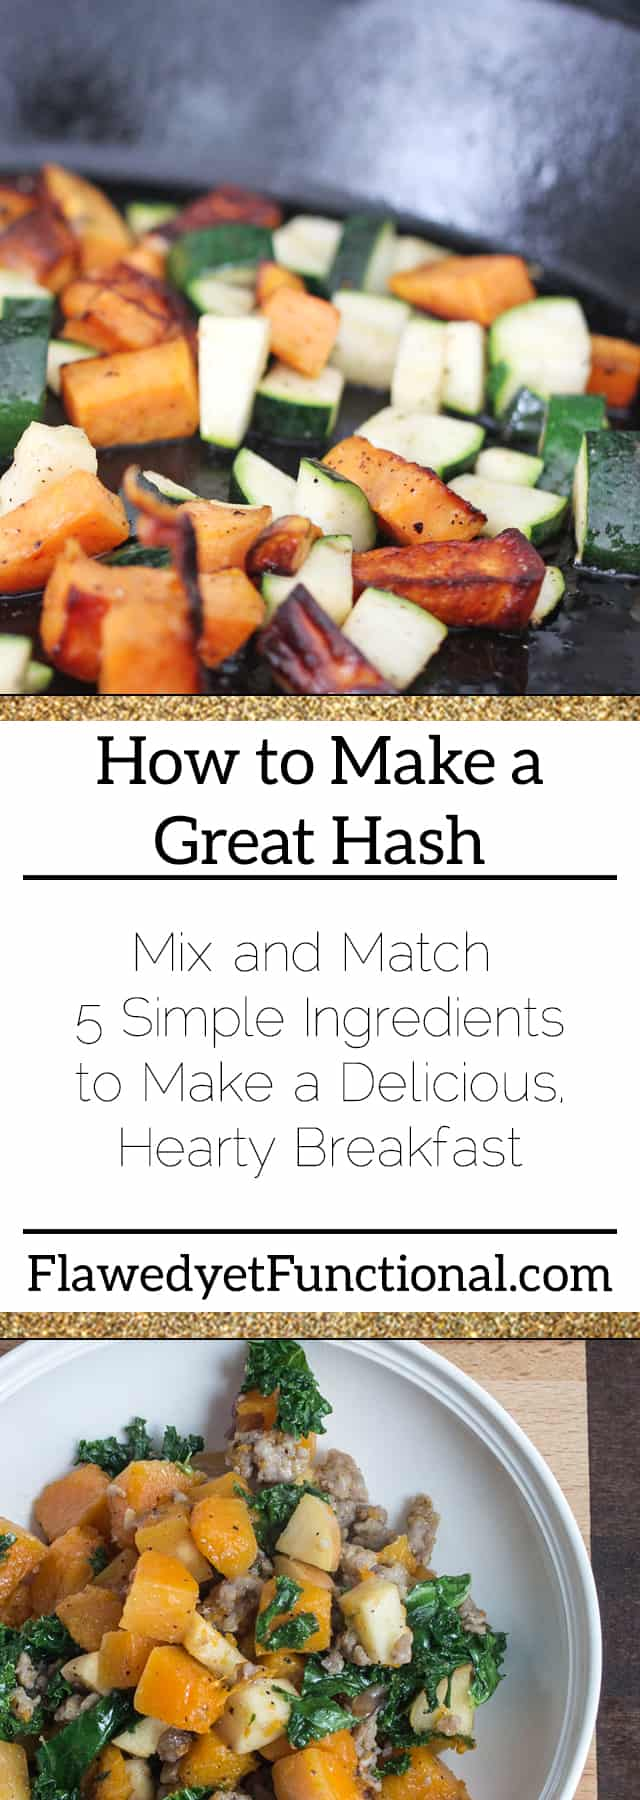 How to Make Breakfast Hash